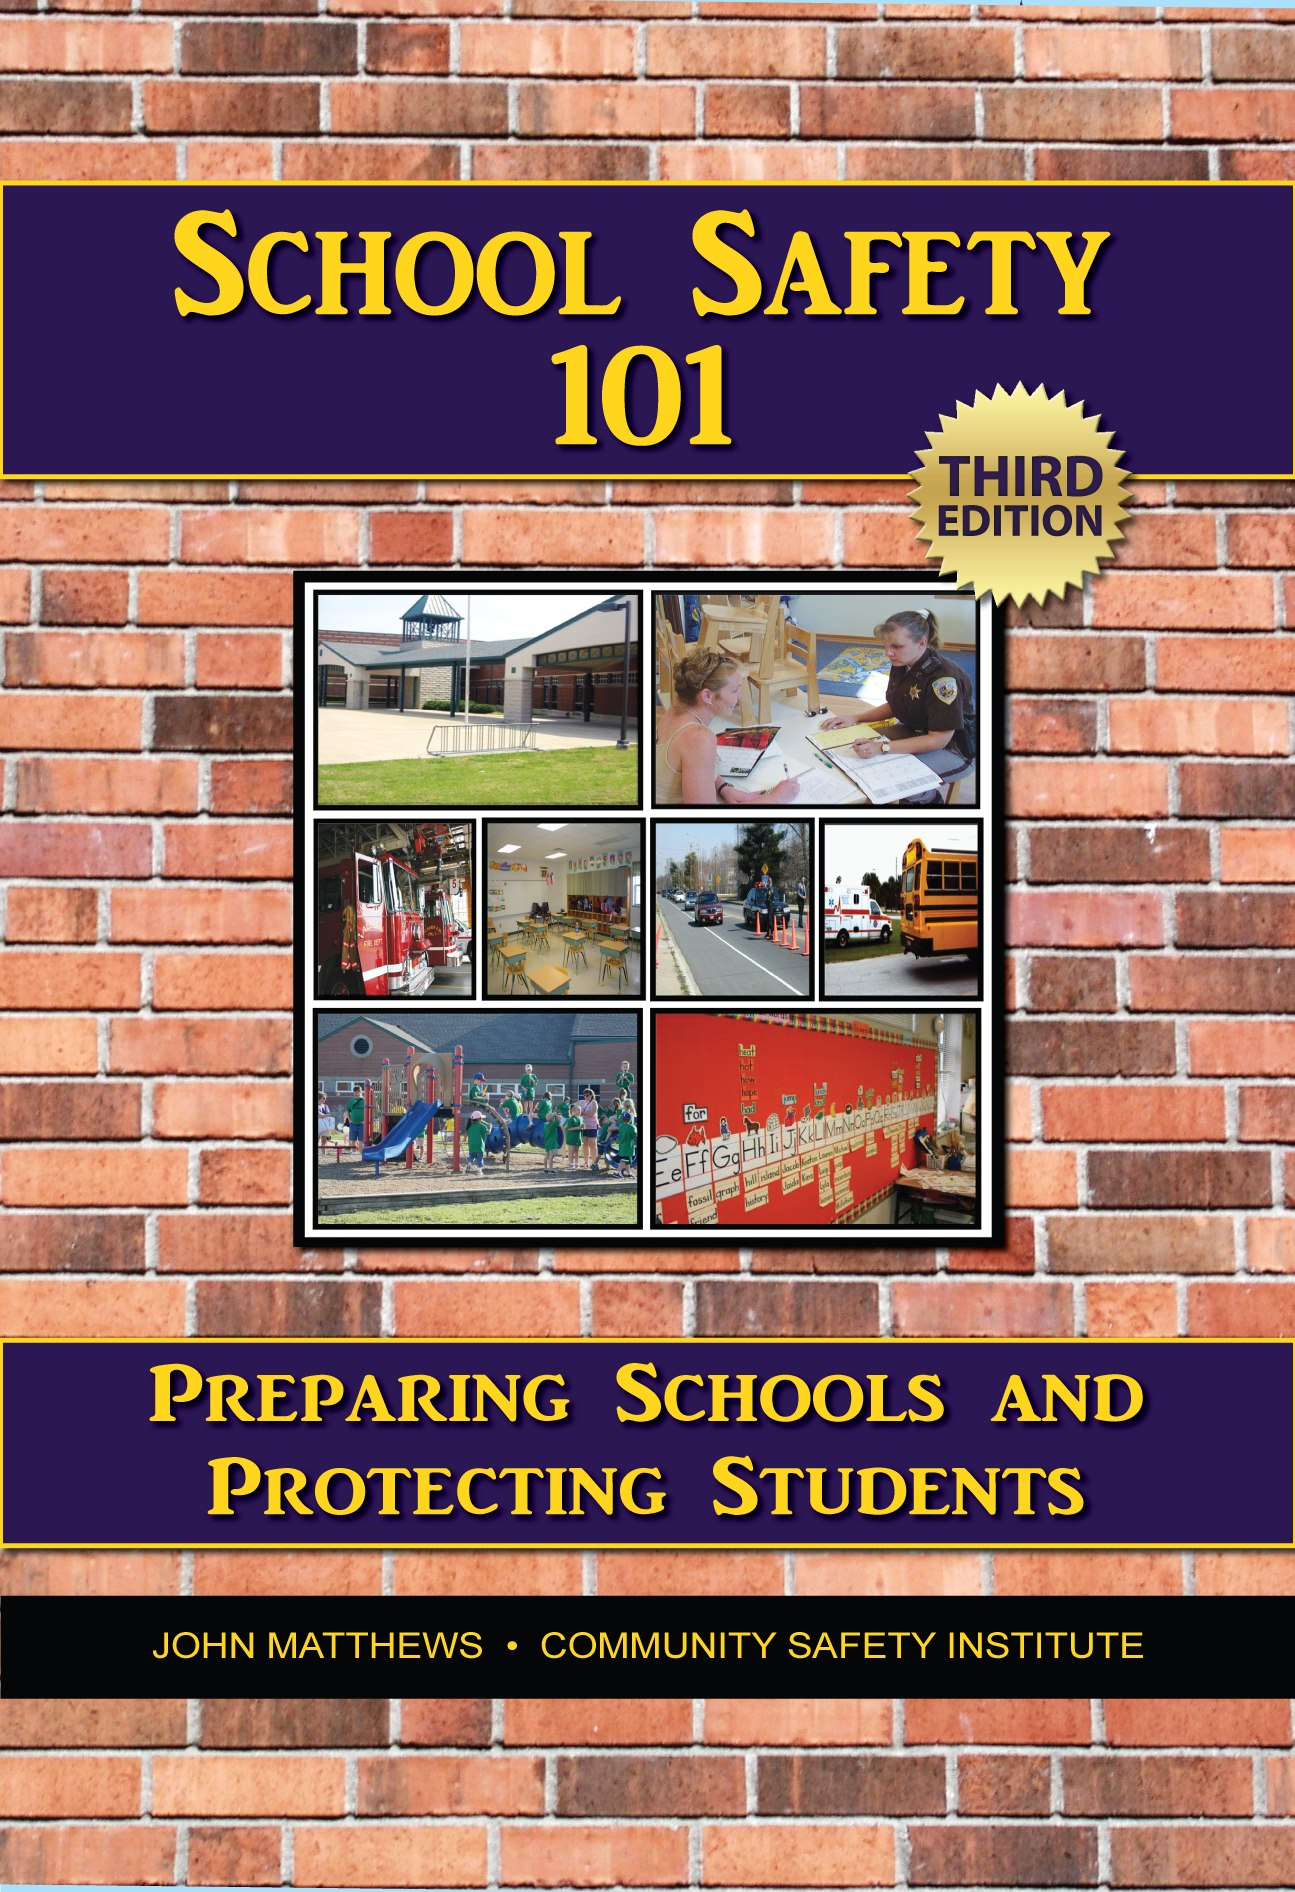 School Safety Book Cover